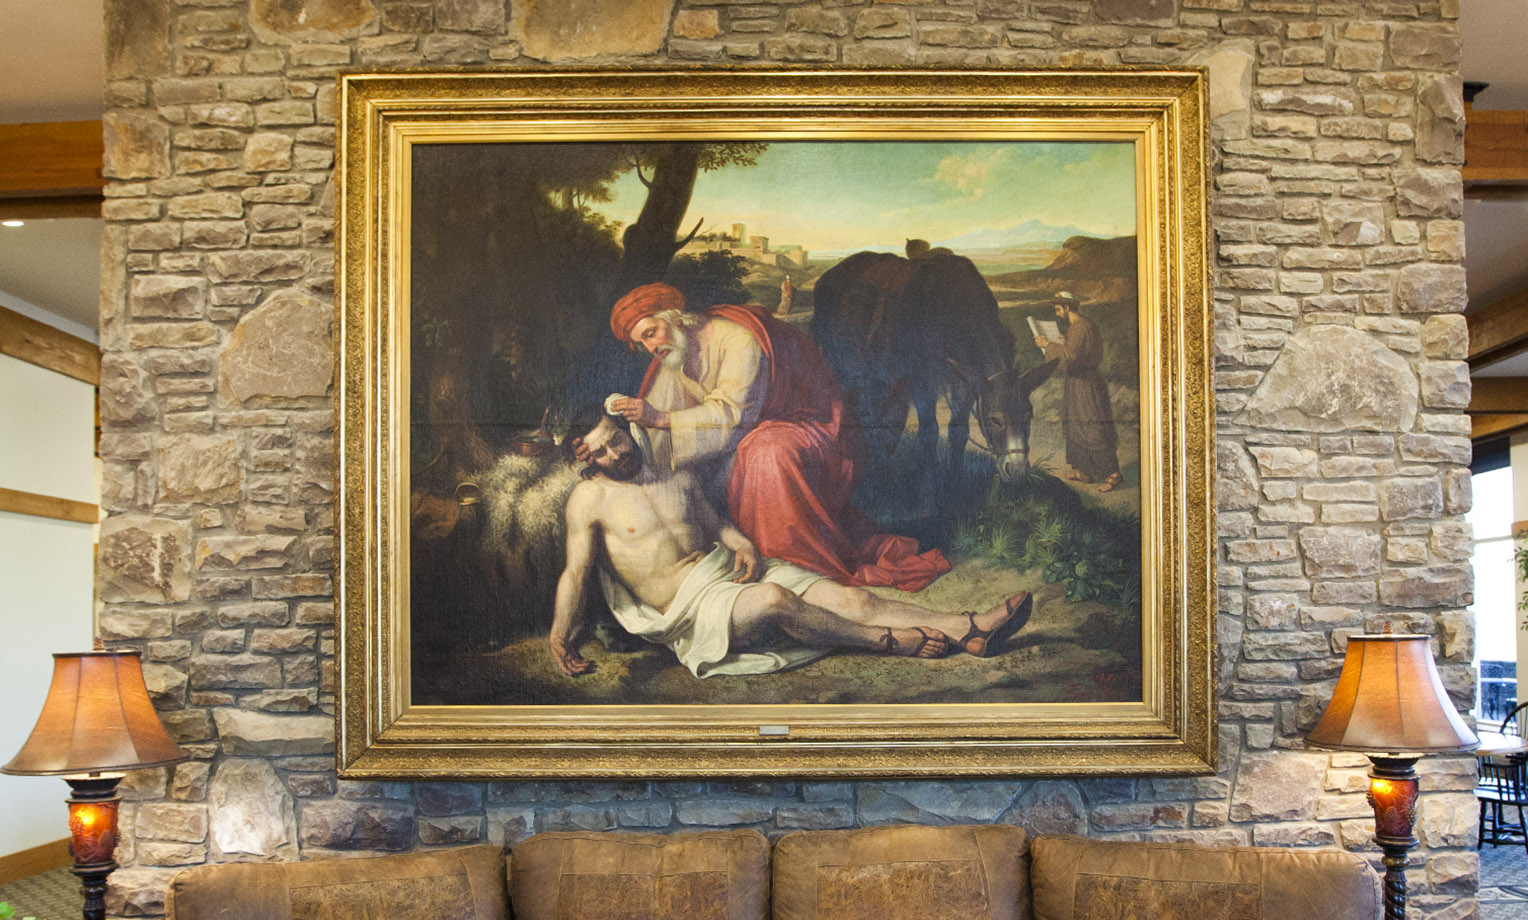 """""""La Caridad del Samaritano"""" literally translated, """"The Charity of the Samaritan"""" is an oil painting by Spaniard Jose Tapiro y Baro (1863-1913) depicting the story of the Good Samaritan from Luke 10:30-37. A gift to Samaritan's Purse in 2011 from the Gamboa Family Trust, the work of art is a reminder to all of Christ's followers to """"Go and do likewise."""" This painting hangs at the entrance to the Furman Building at the ministry's international headquarters in Boone, North Carolina."""